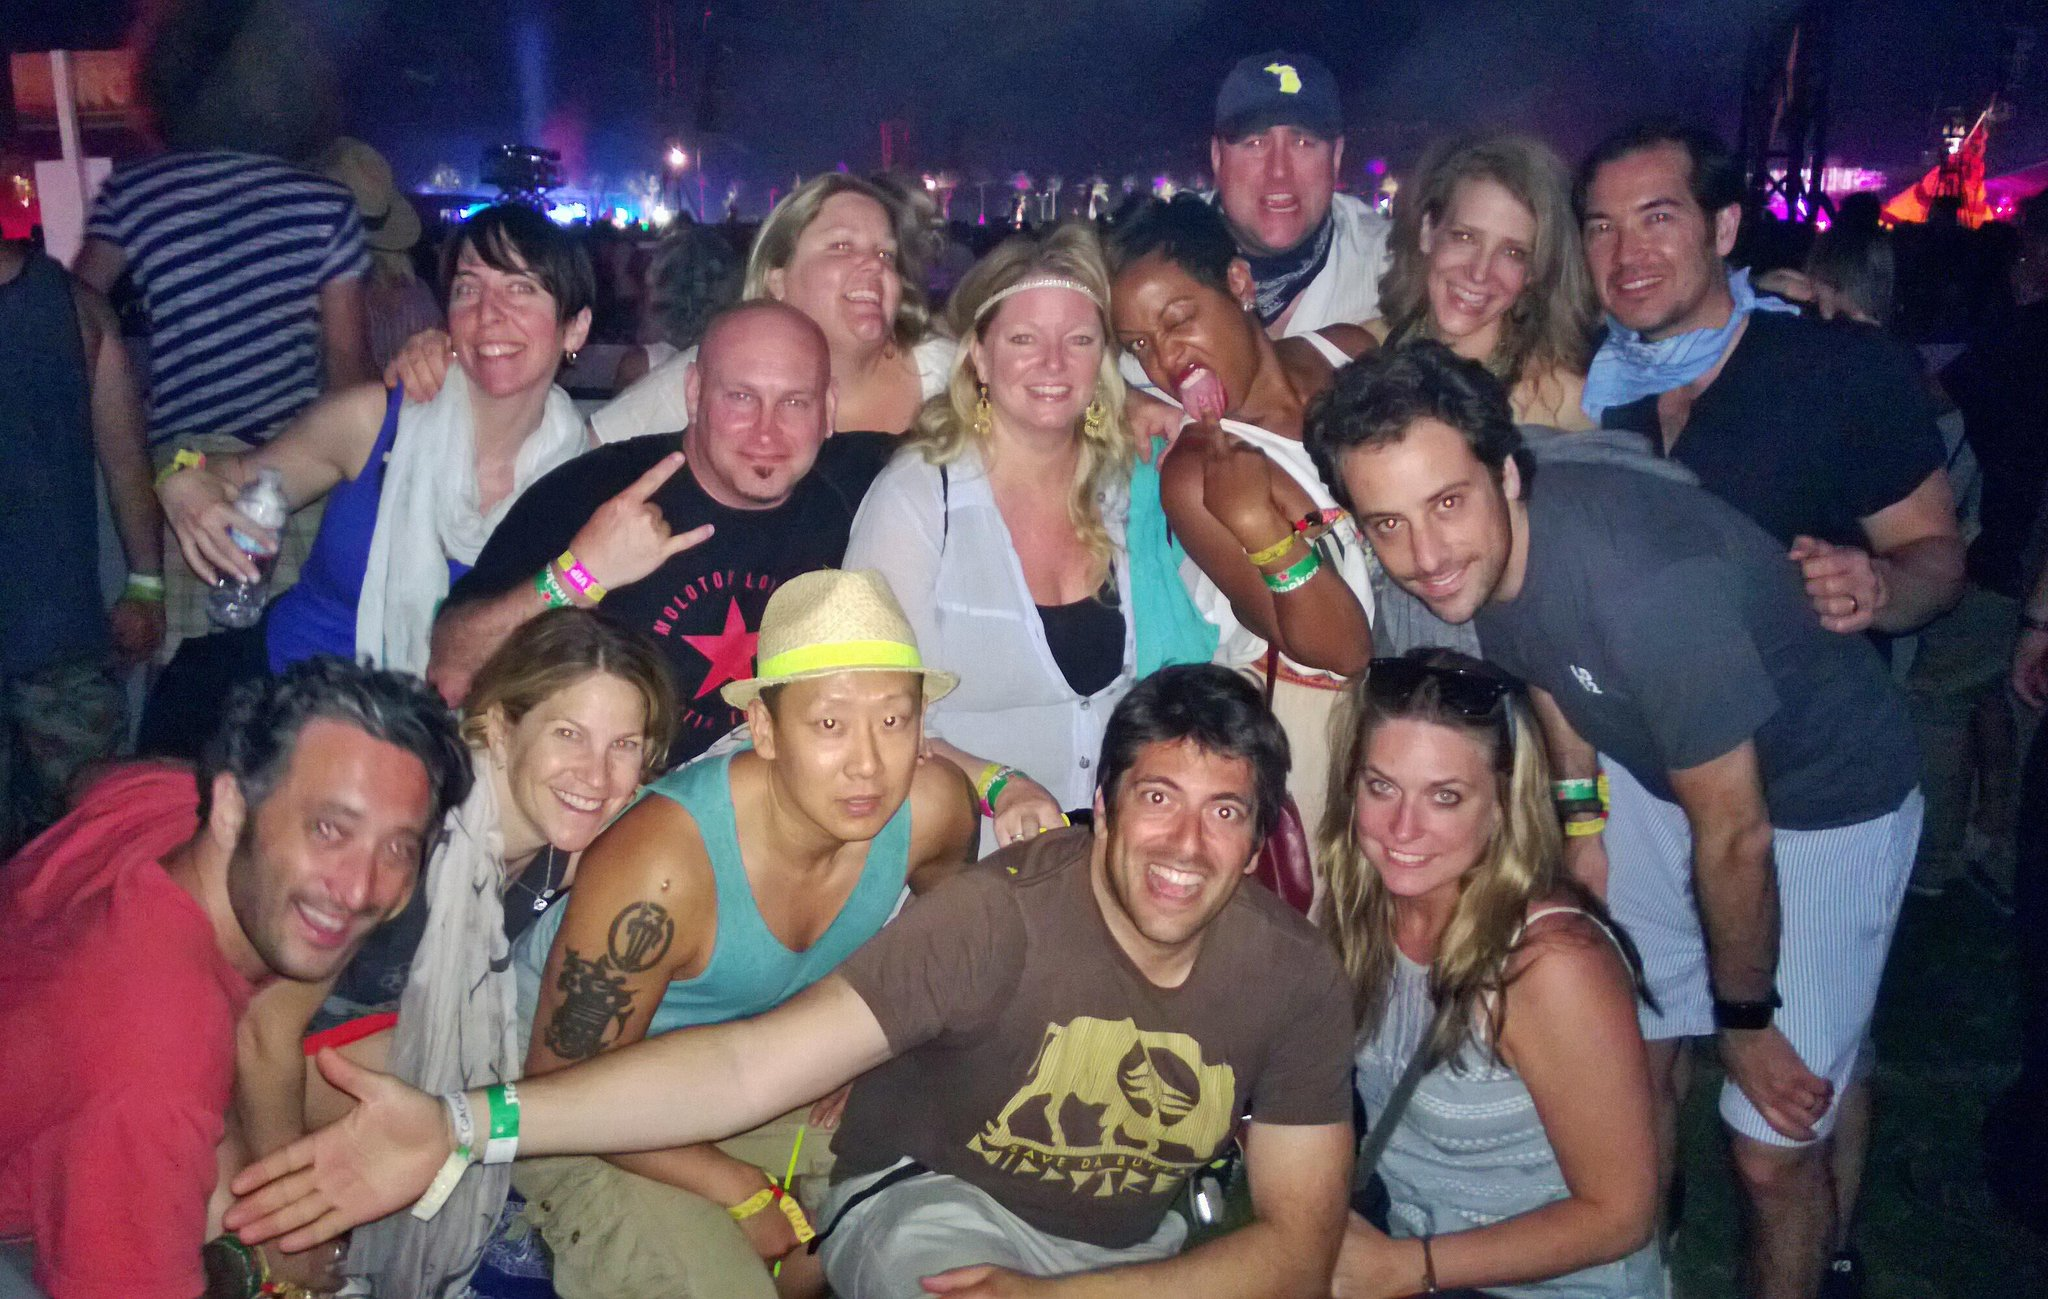 Half the crew from #savefarisfest. Best weekend ever. Thanks guys http://t.co/9EAxEWW9NN